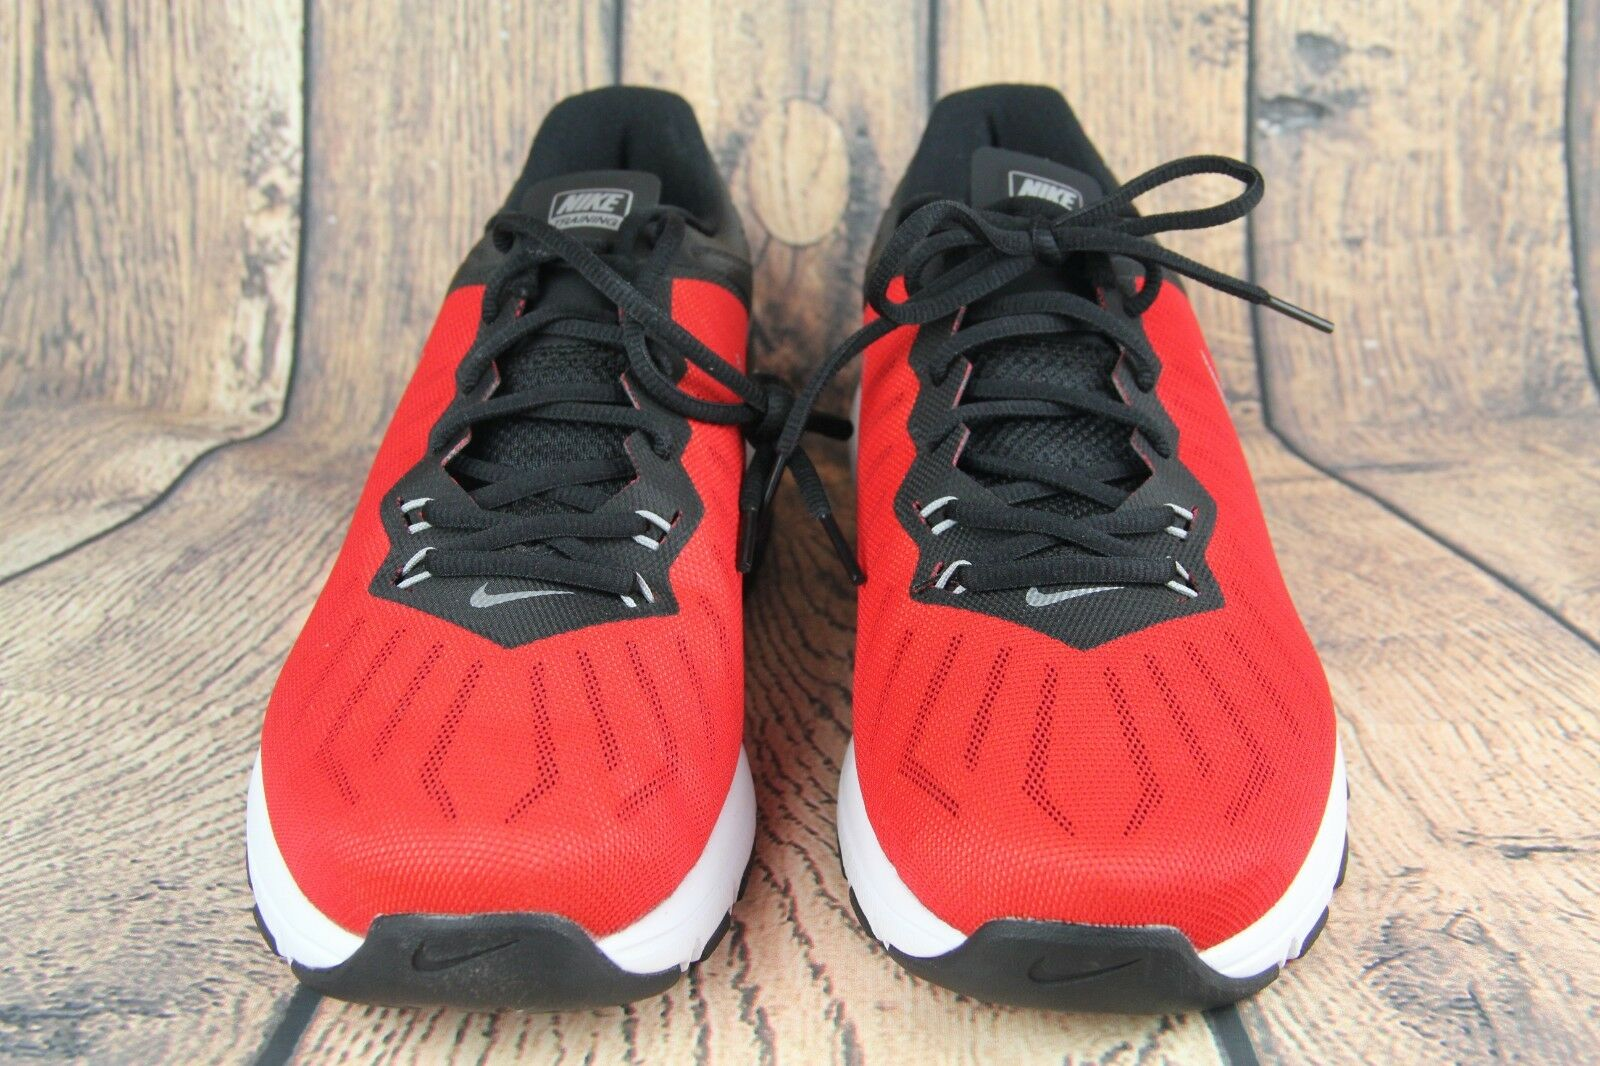 a88630c8b3 NIKE Air Max Full TR Sneakers shoes Black Red Men's Size 12 NEW 819004-600  Ride ntjvgg7831-Athletic Shoes